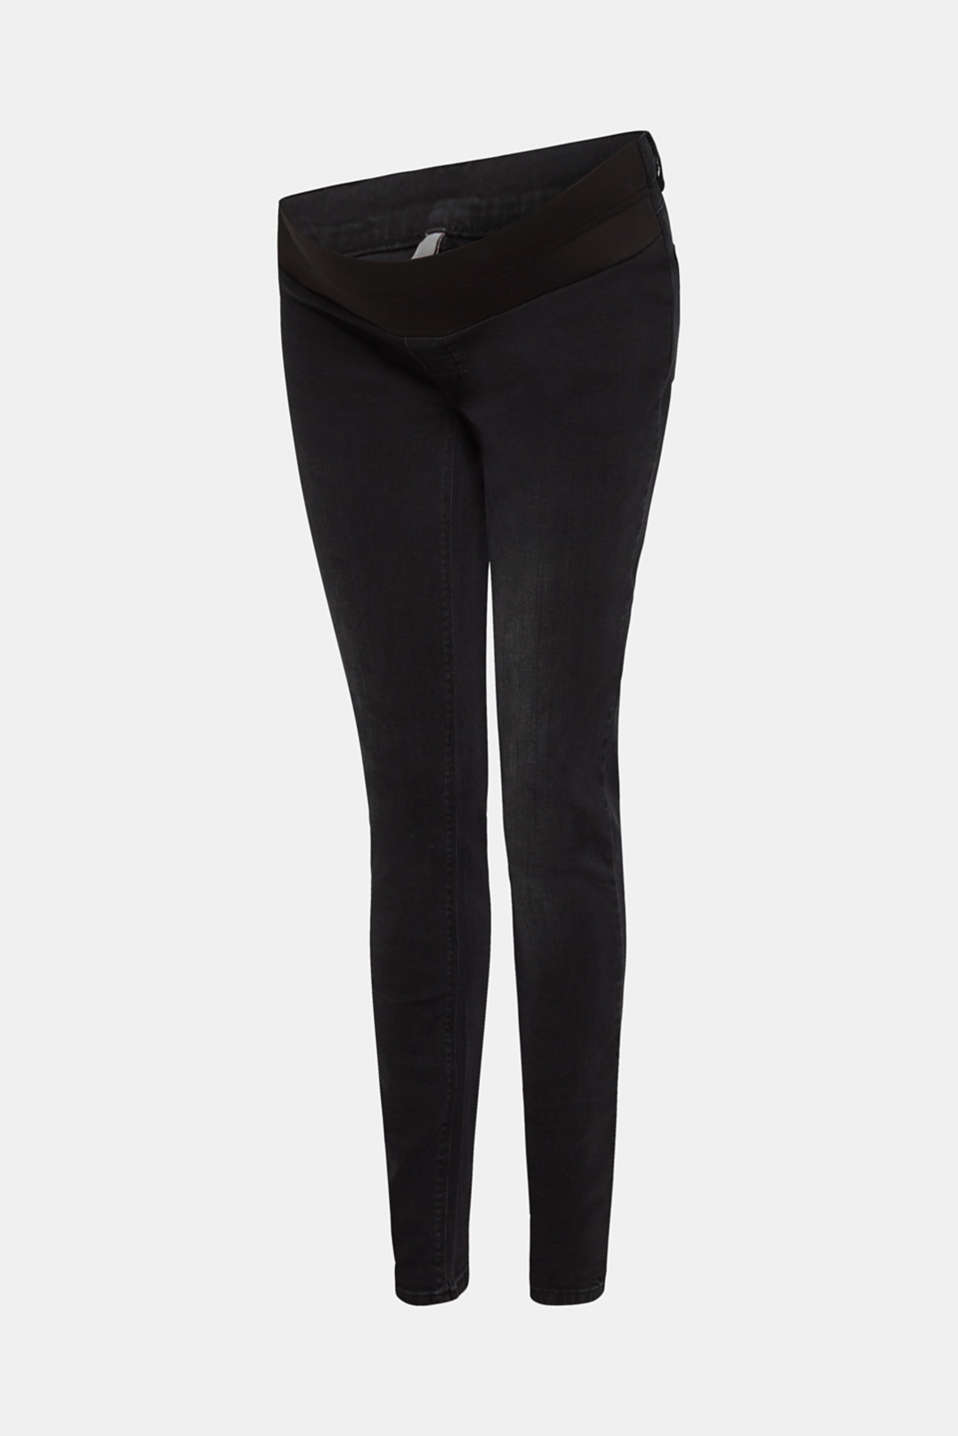 Jeggings with under-bump waistband, LCBLACK DARK WAS, detail image number 6